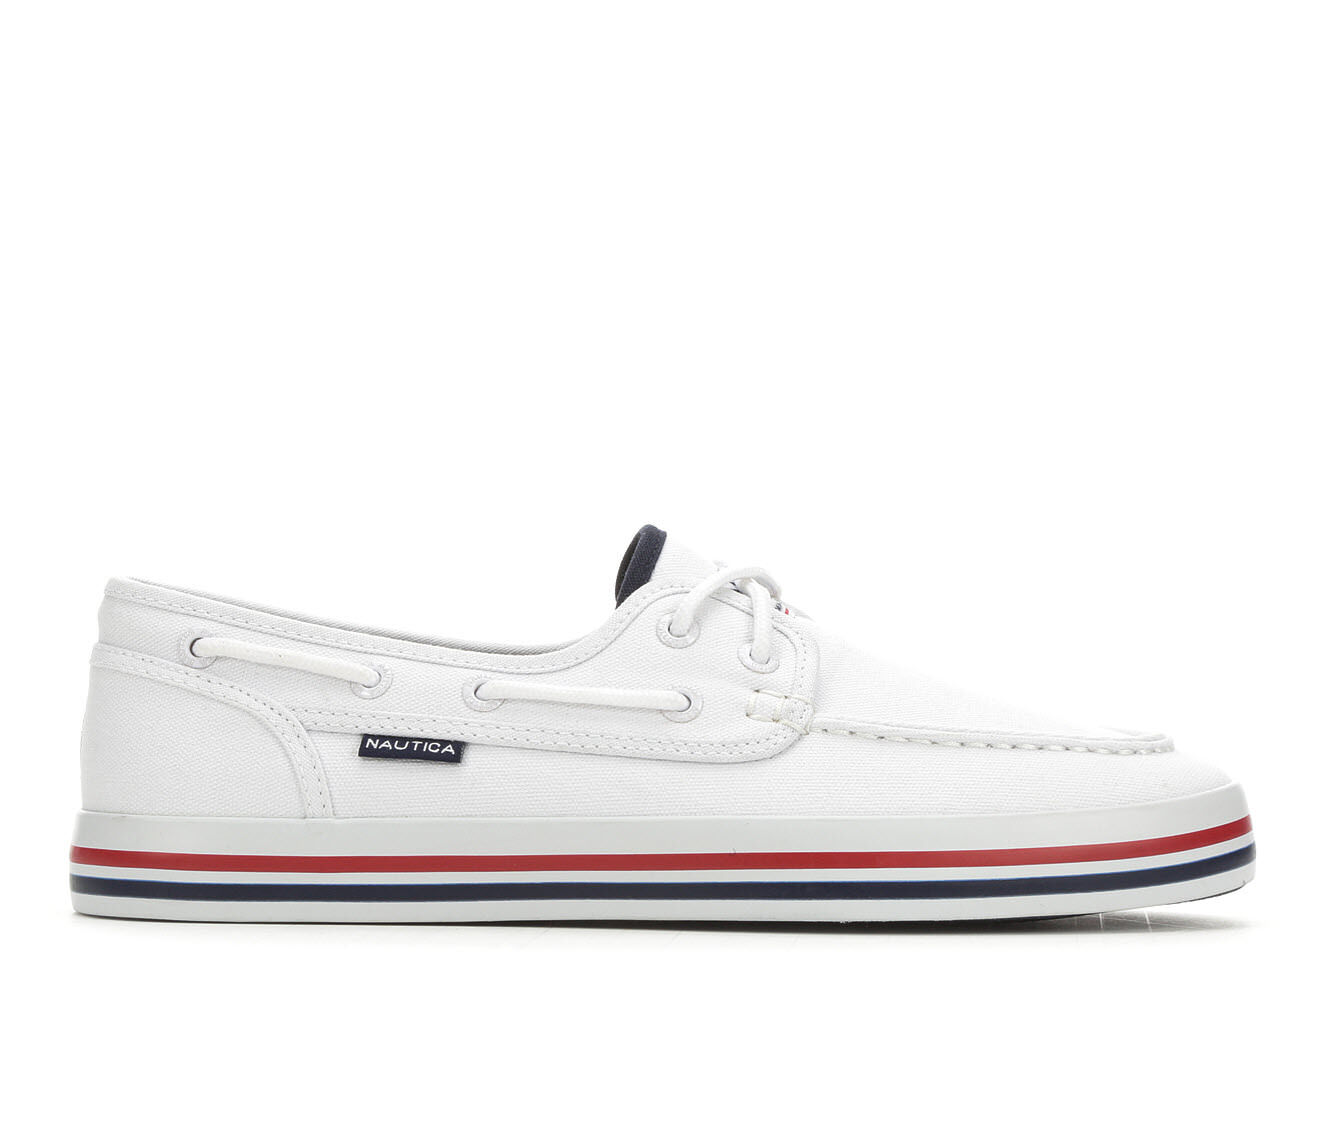 Men's Nautica Spinnaker 3 Boat Shoes White Heritage